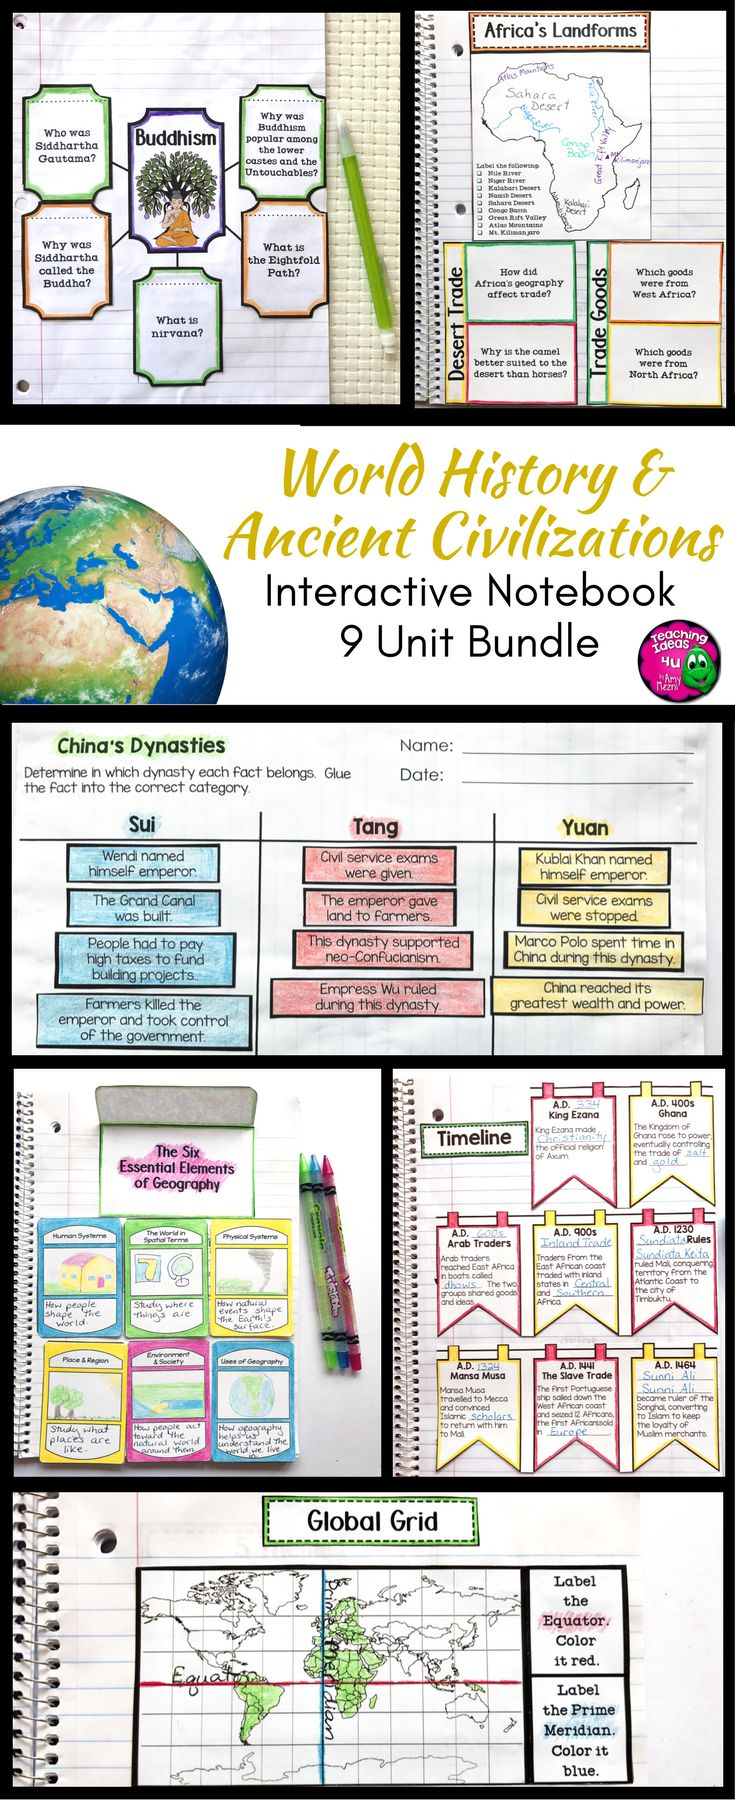 Ancient / World History Interactive Notebook Social Studies BUNDLE - Use this resource with your 5th, 6th, or 7th grade classroom or home school students. It's great for those studying World History, Ancient History, or other Social Studies. Topics include geography, economics, citizenship, early agriculture, Ancient Egypt, Kush, Israelites, the rise of Christianity, Ancient Greek & India, Early China, Rome, and much more. {fifth, sixth, seventh graders, upper elementary, middle school}